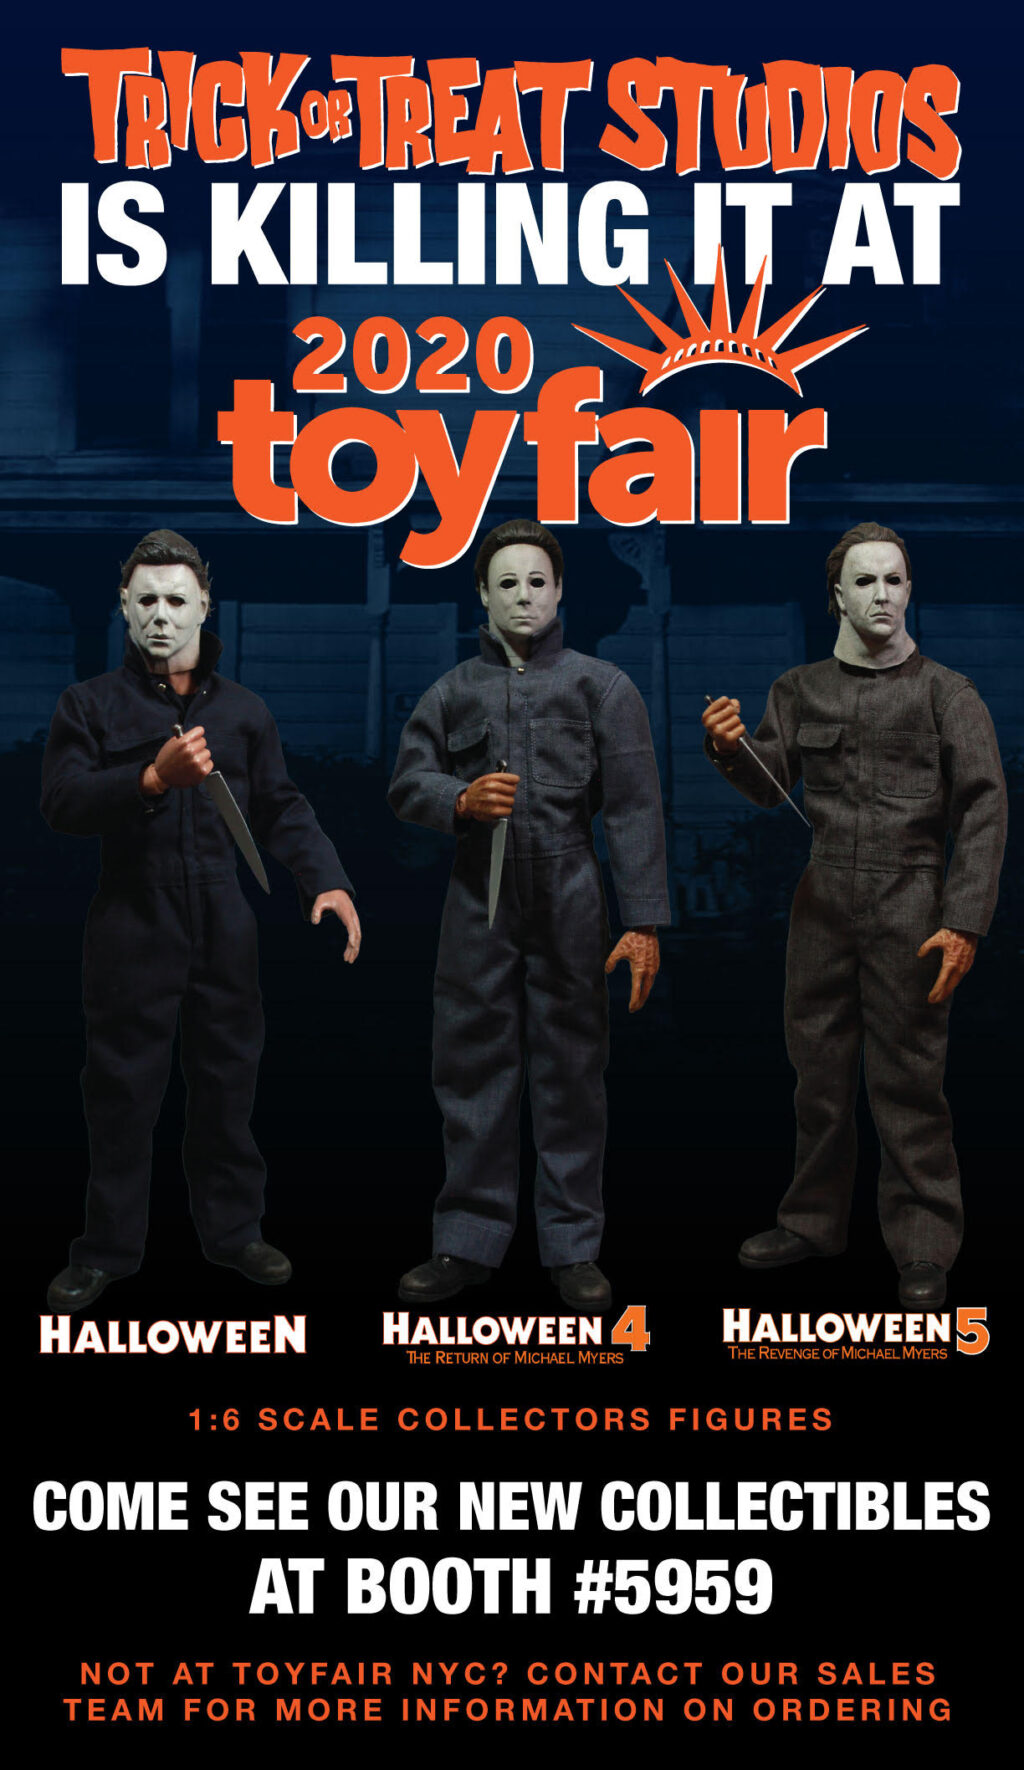 2020 Halloween Michael Myers Figure New York Toy Fair 2020: Michael Myers 1:6 Figures from Trick or